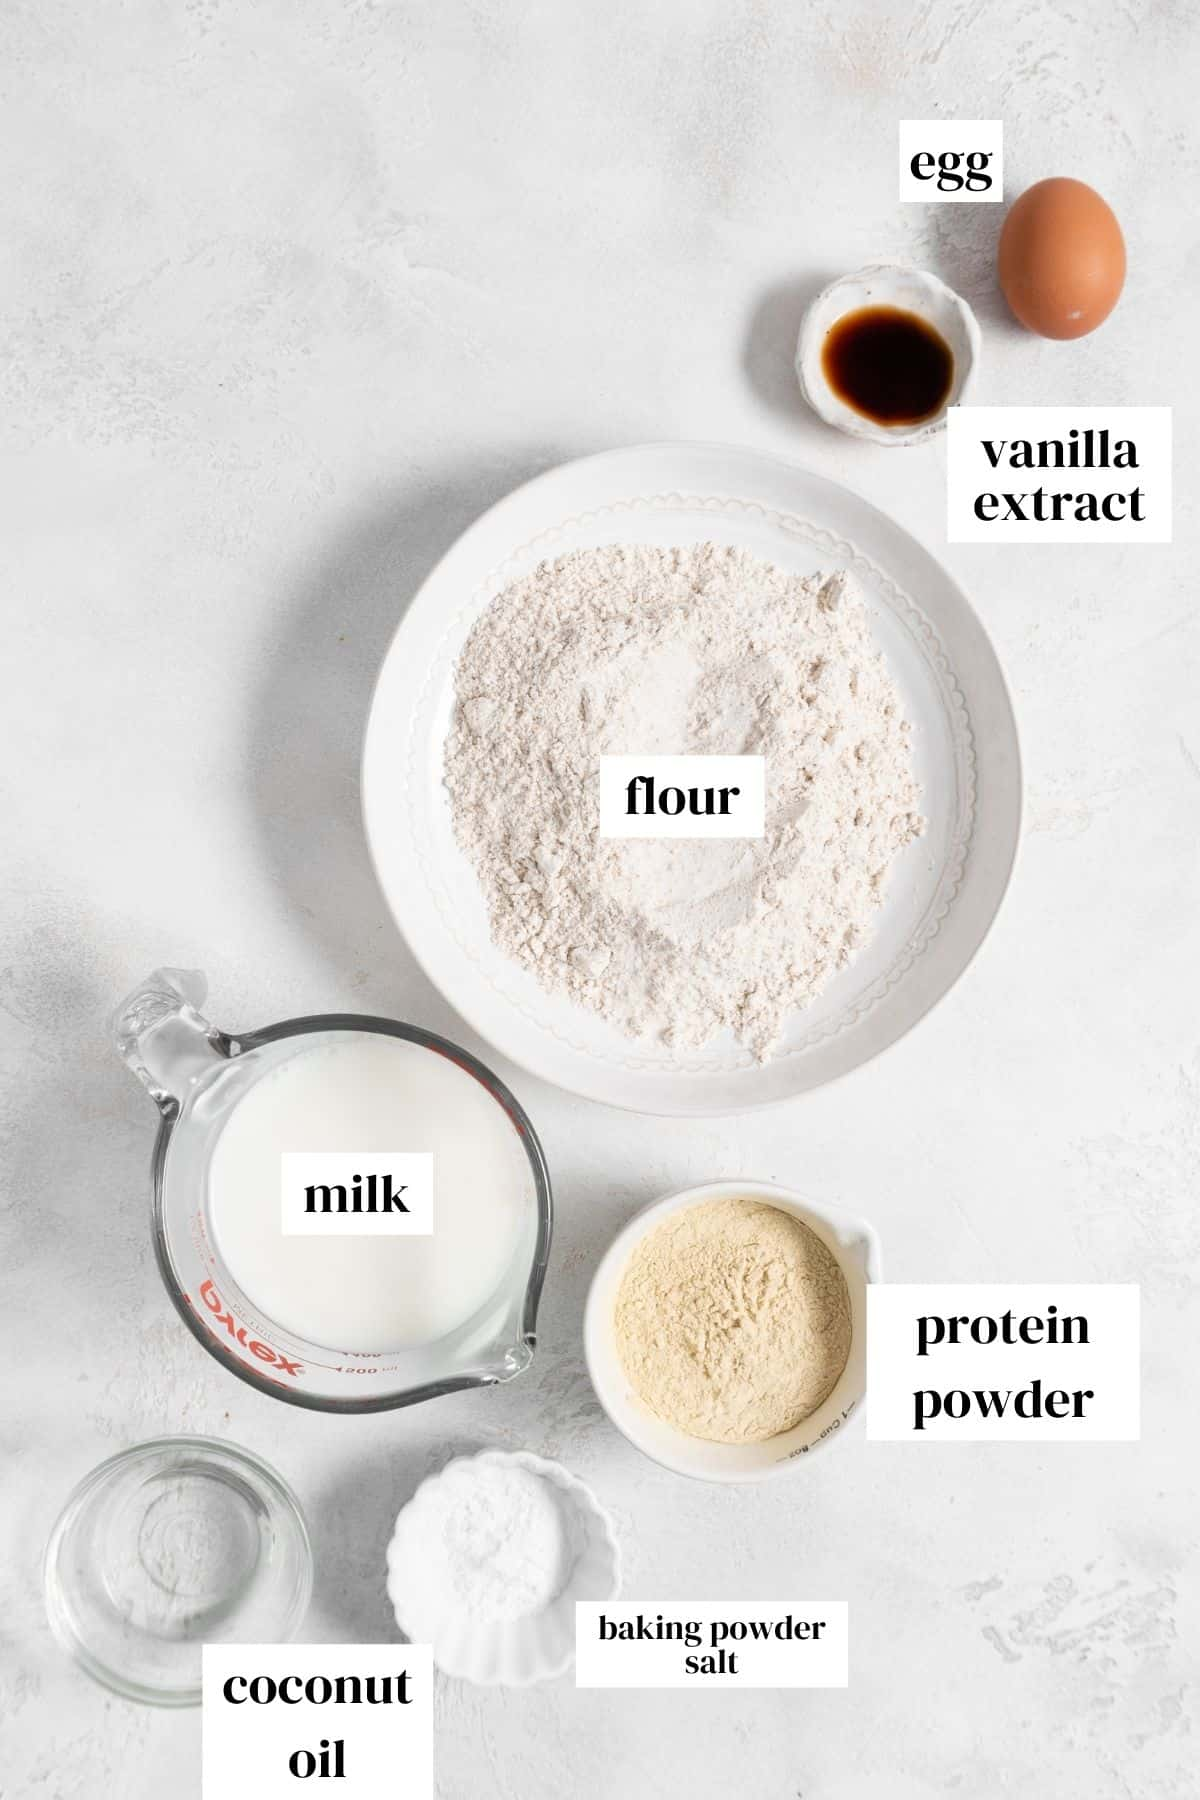 egg, vanilla extract, flour, milk, protein powder, baking powder, salt, and melted coconut oil on a light surface.